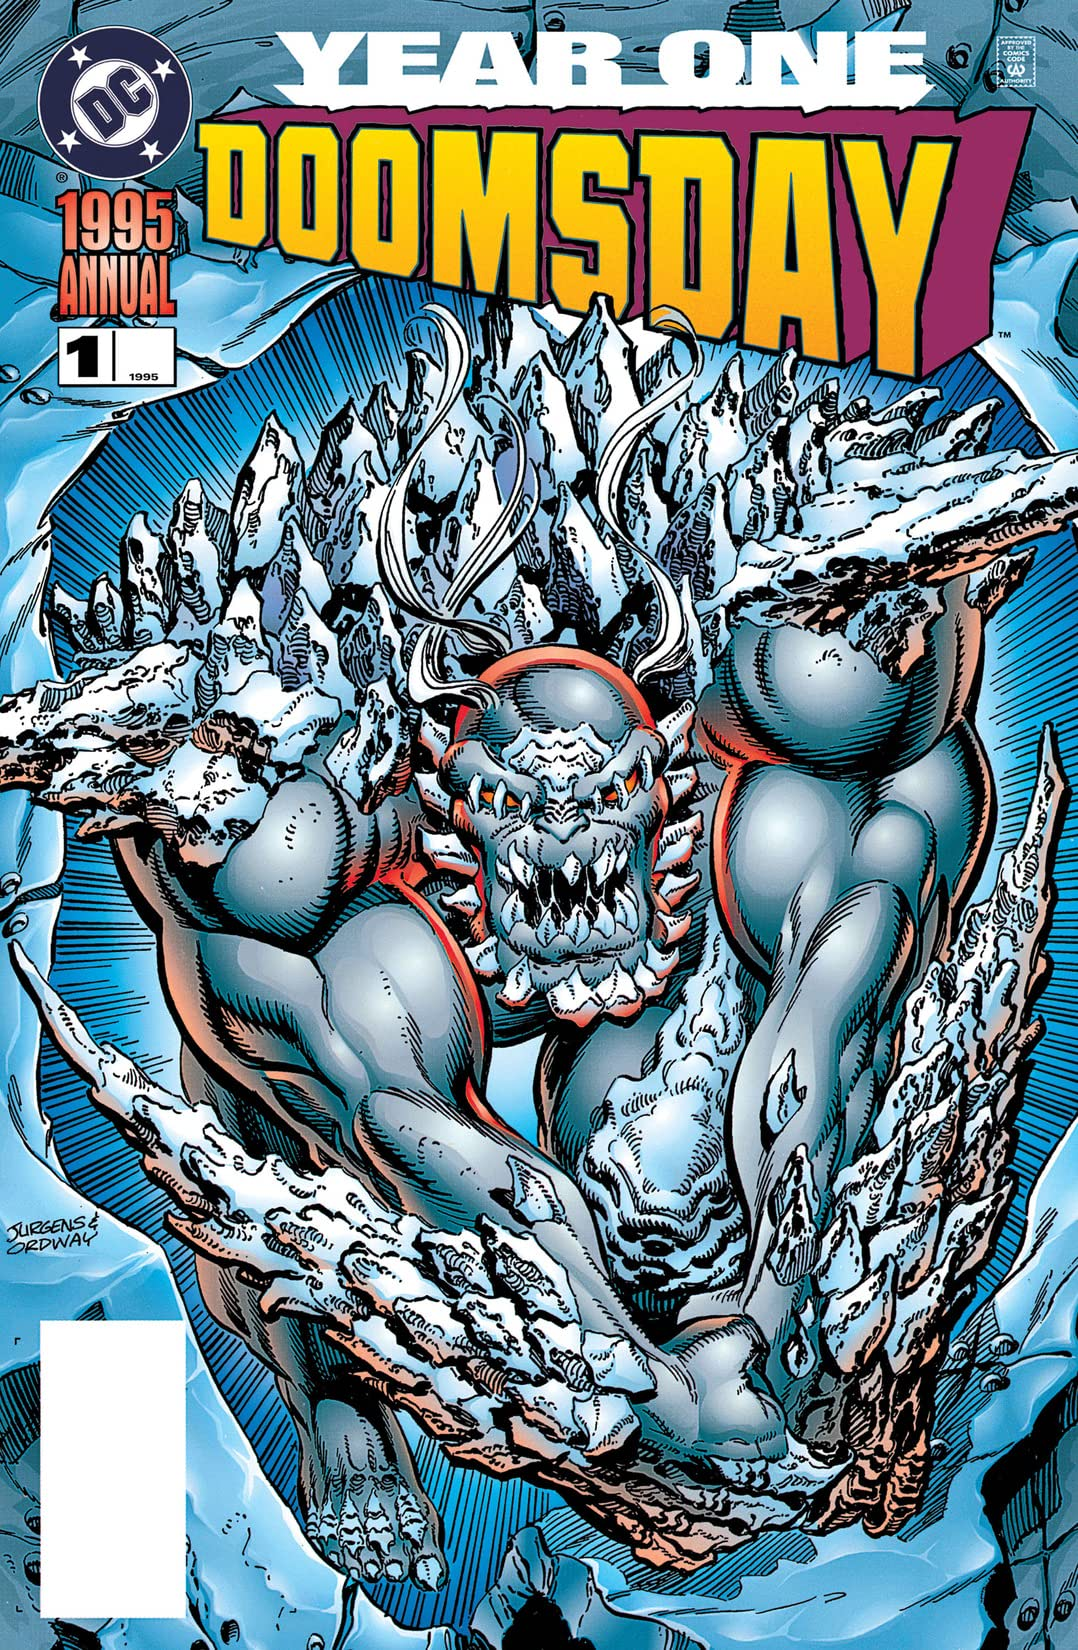 Doomsday (1995): Annual #1